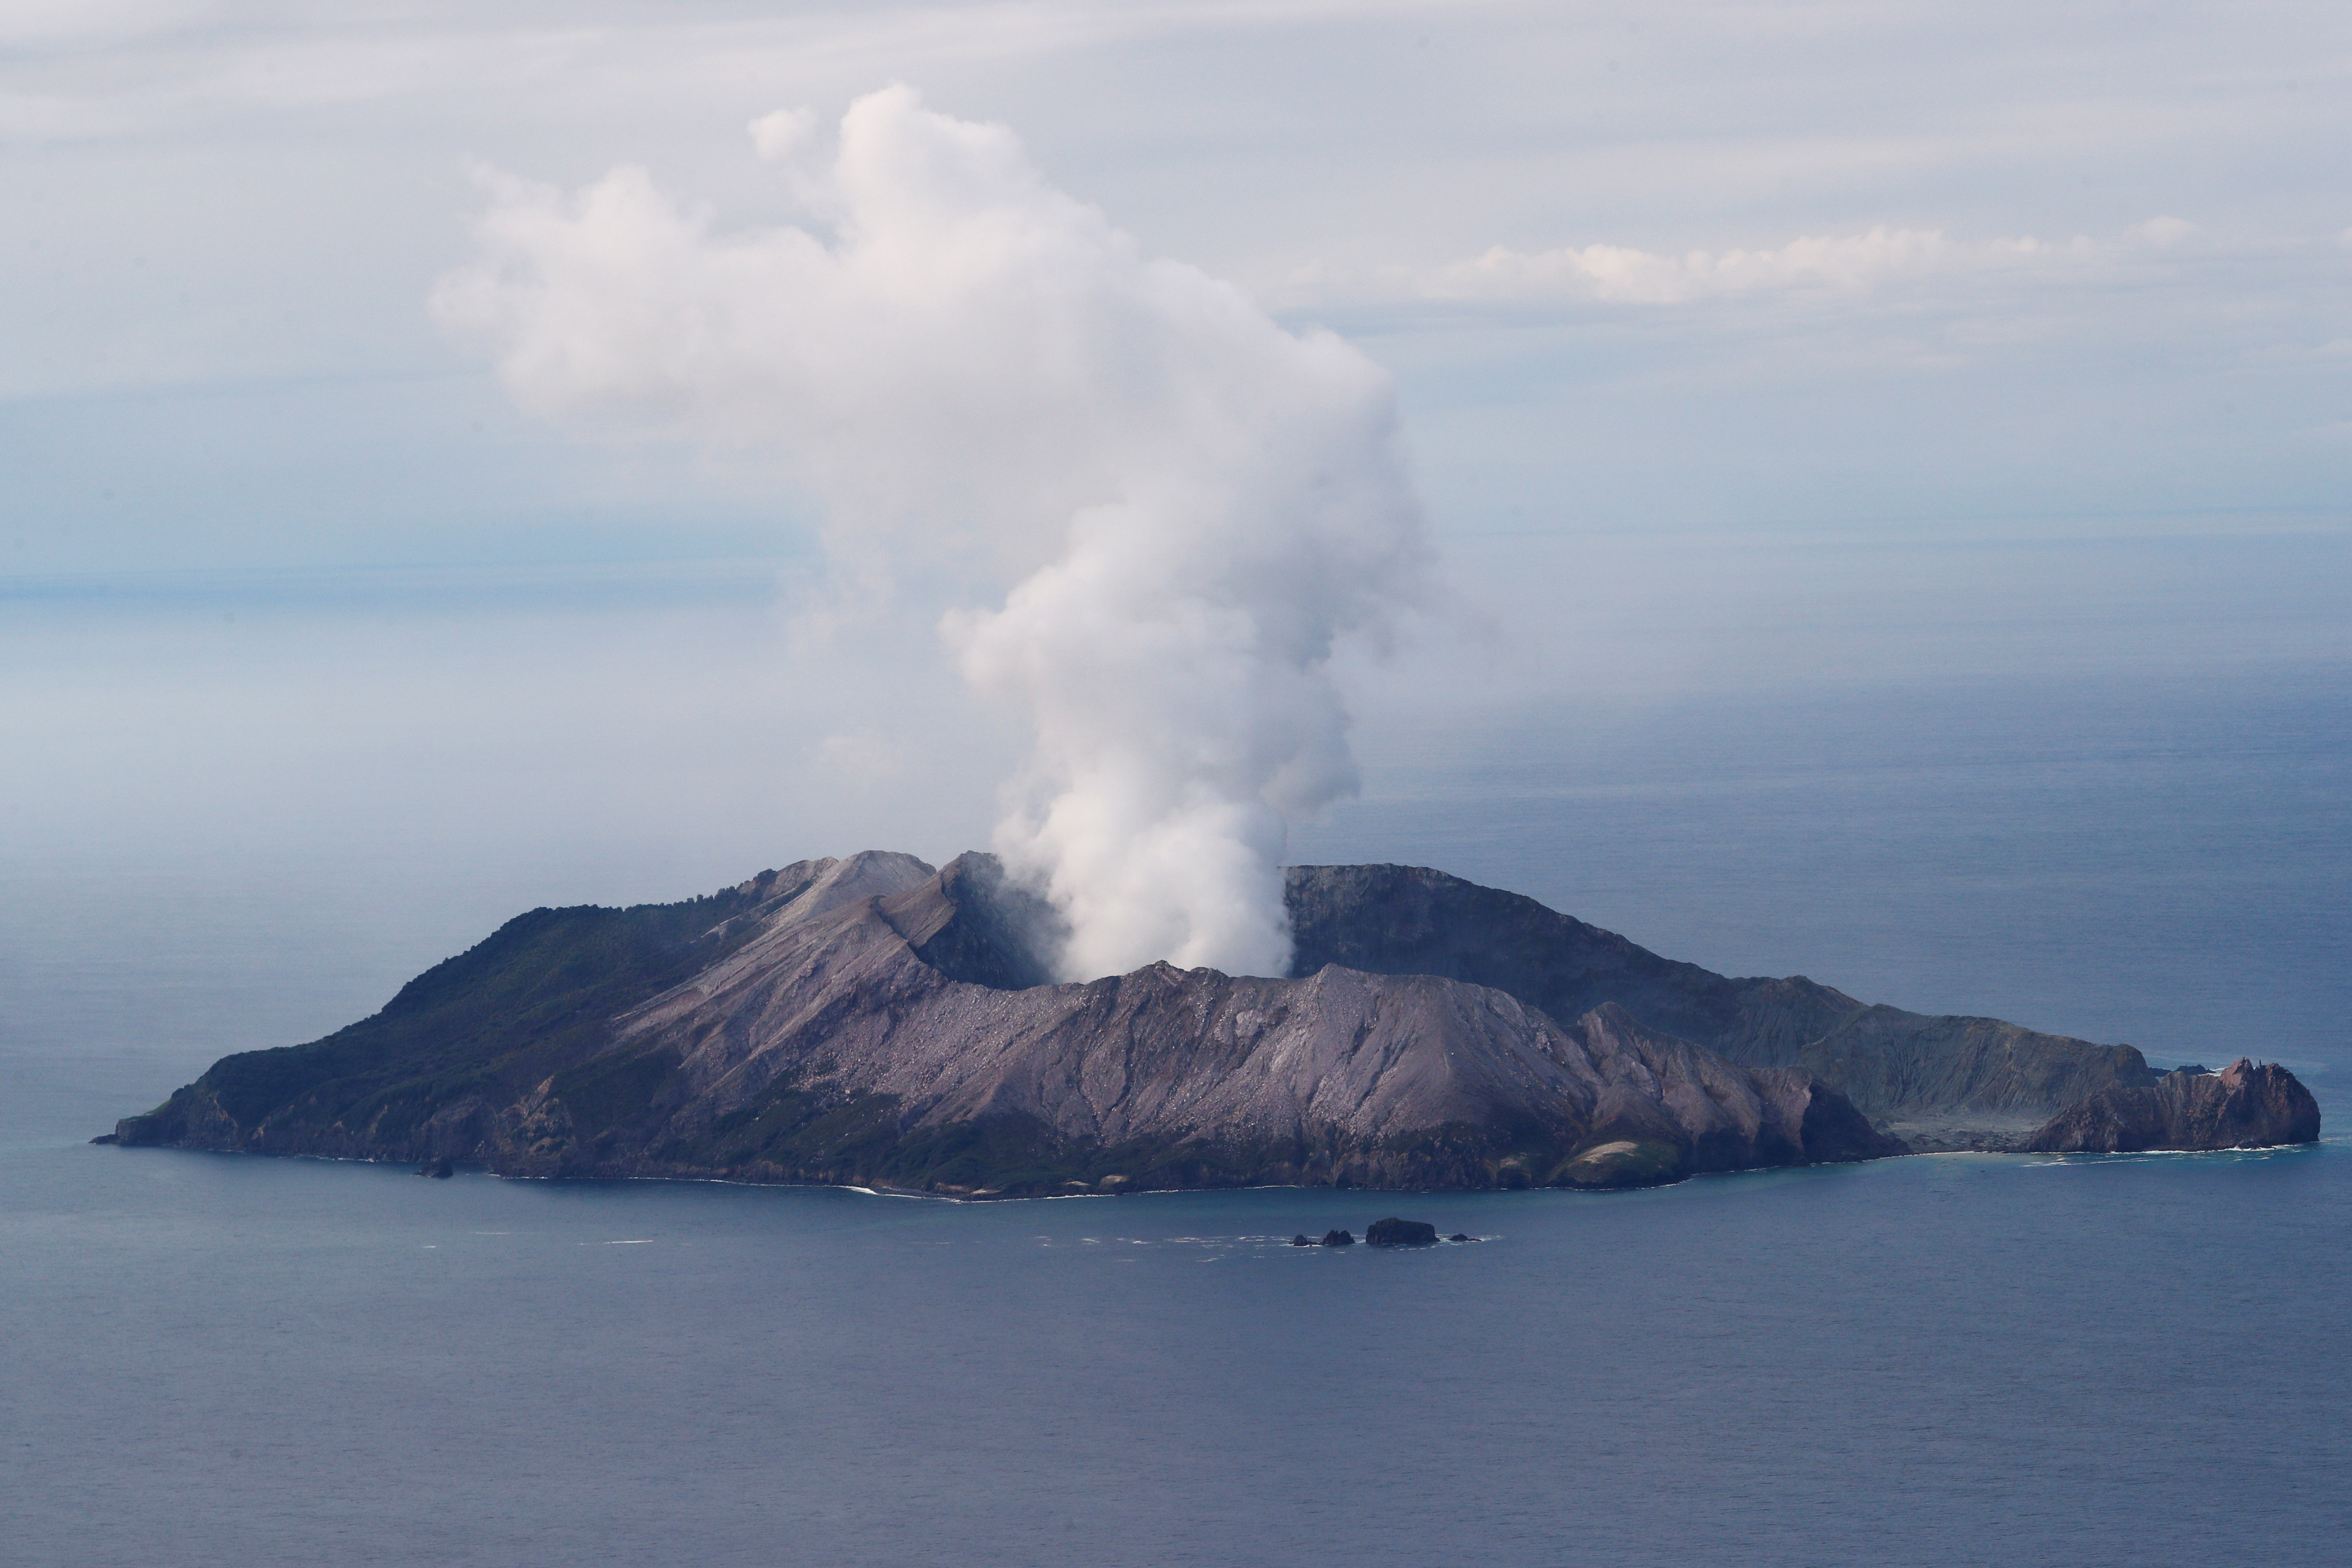 An aerial view of the Whakaari, also known as White Island volcano, in New Zealand, December 12, 2019. REUTERS/Jorge Silva REFILE - CORRECTING LOCATION - RC2HTD9S77NQ